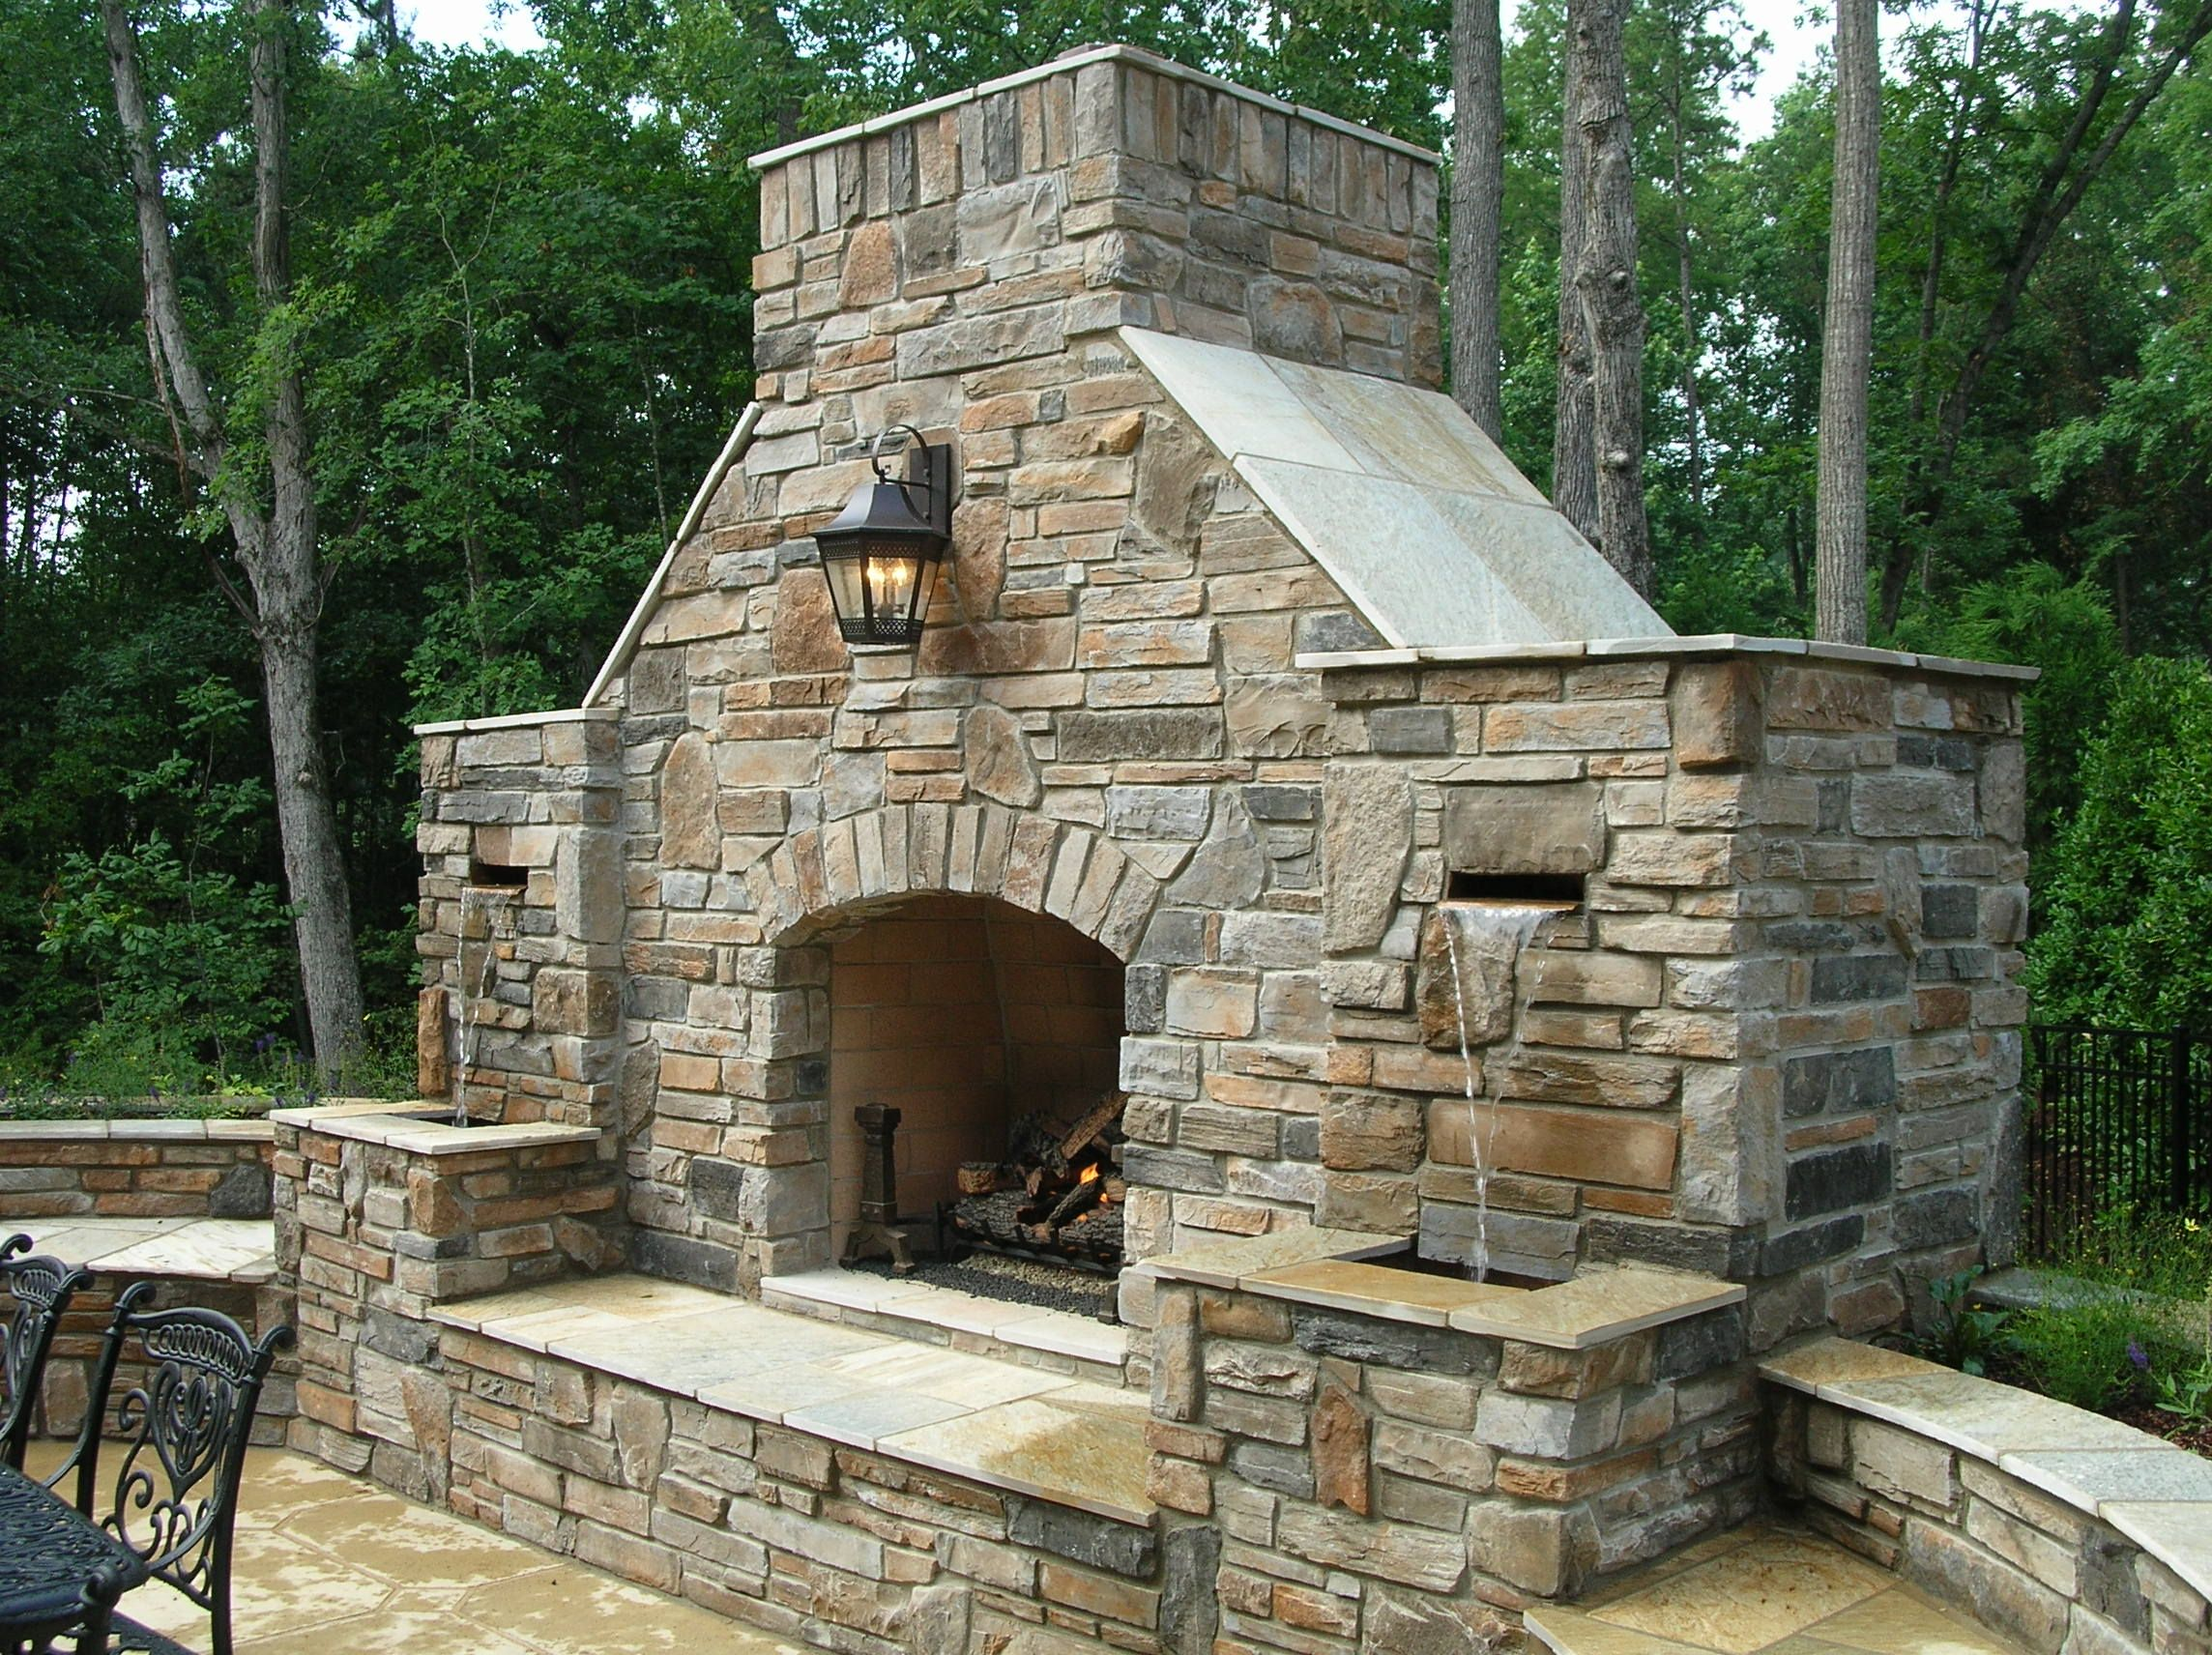 Combination Outdoor Fireplace And Water Fountain